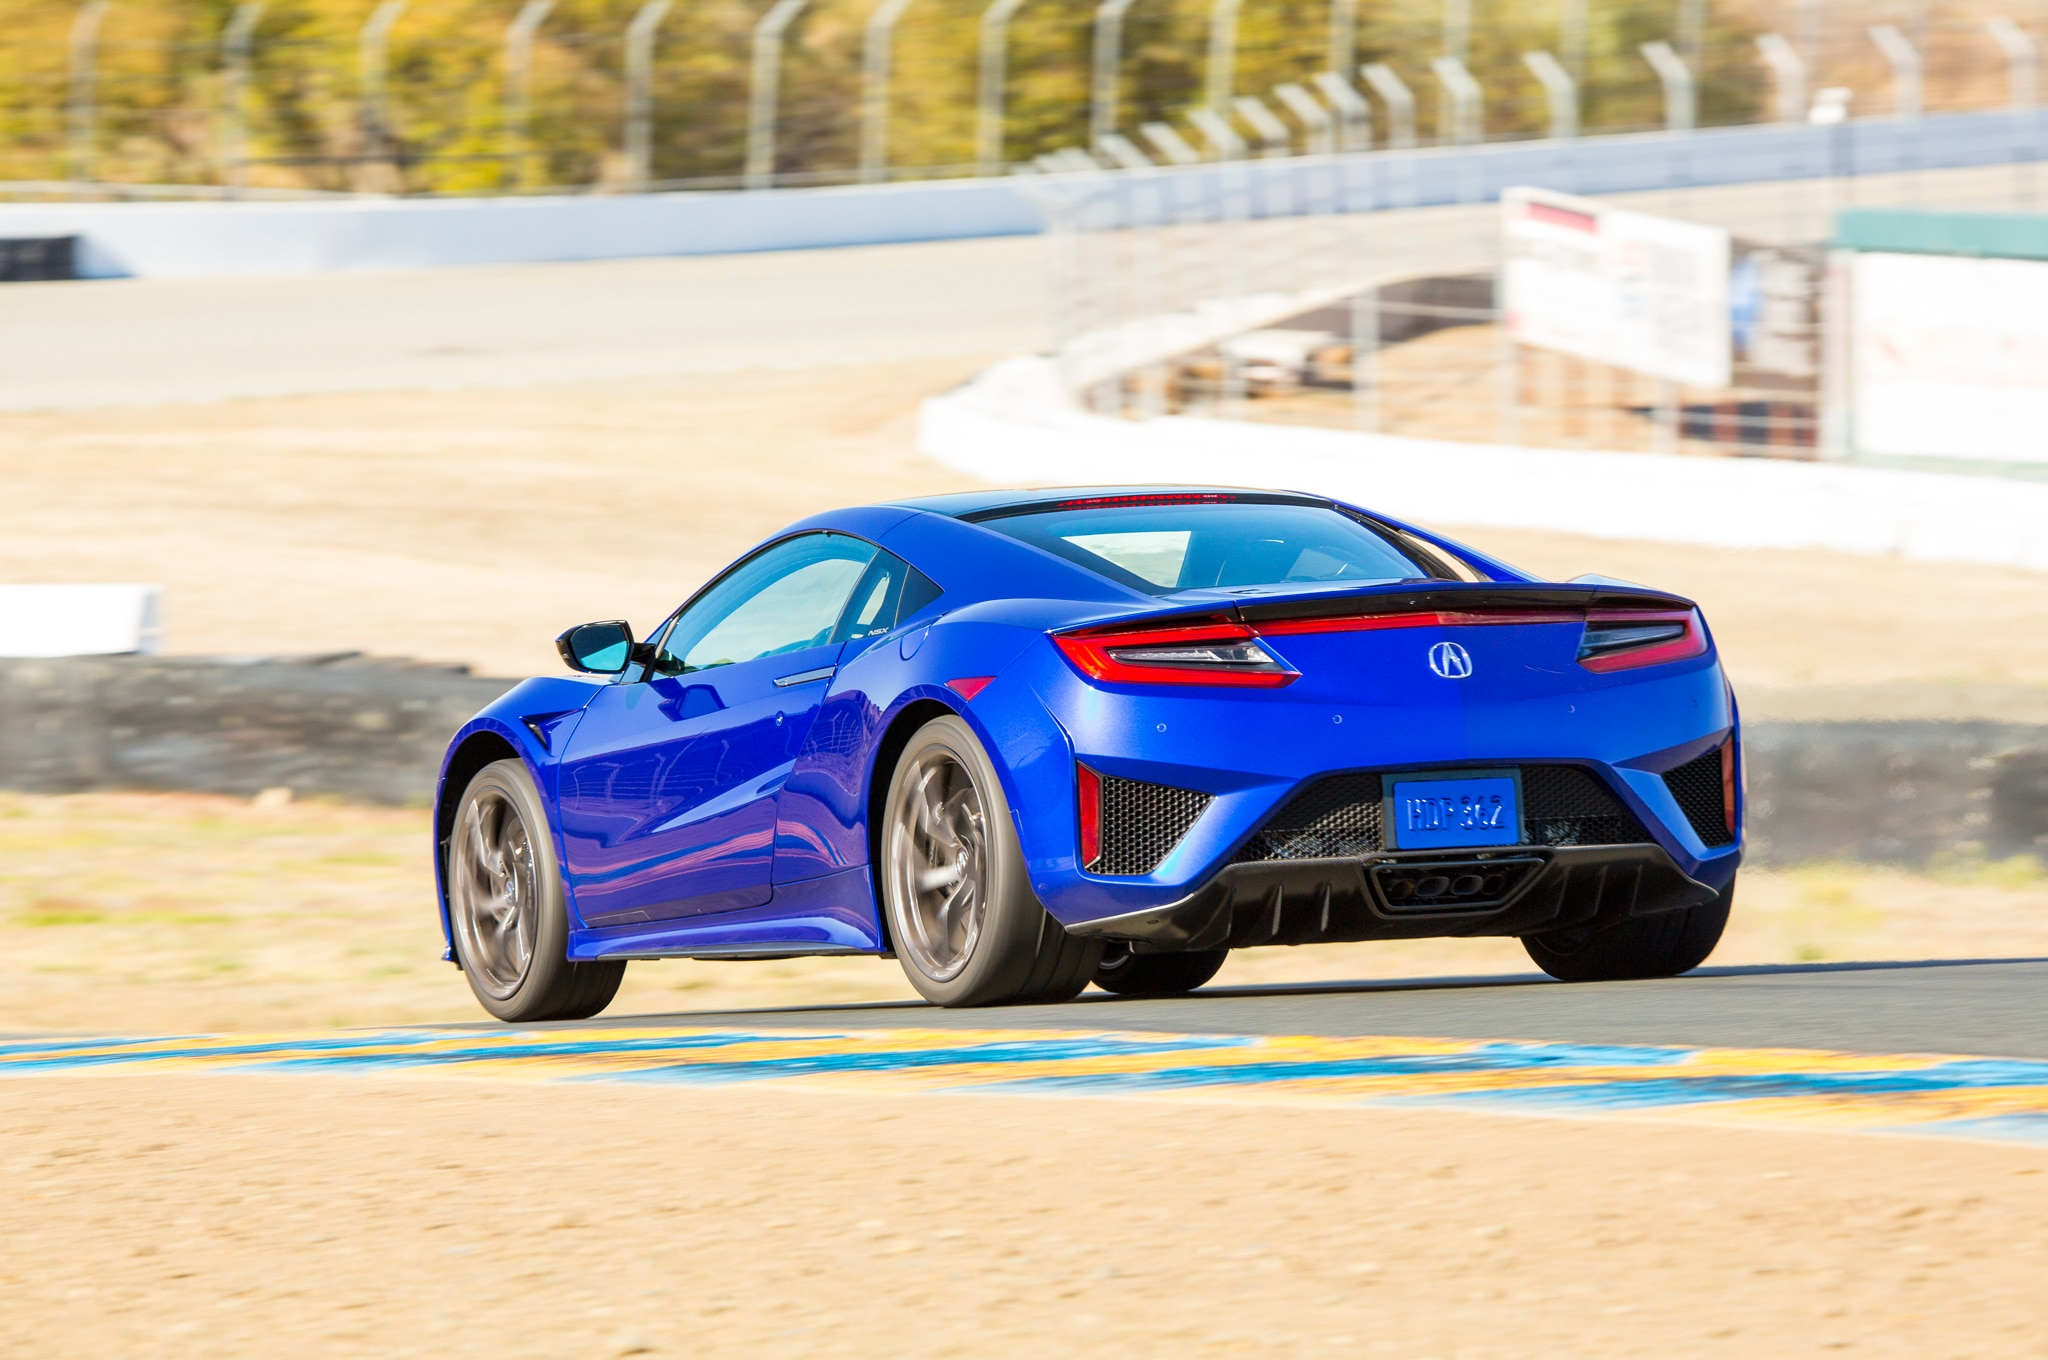 Exploring The 2017 Acura NSX Performance Manufacturing Center